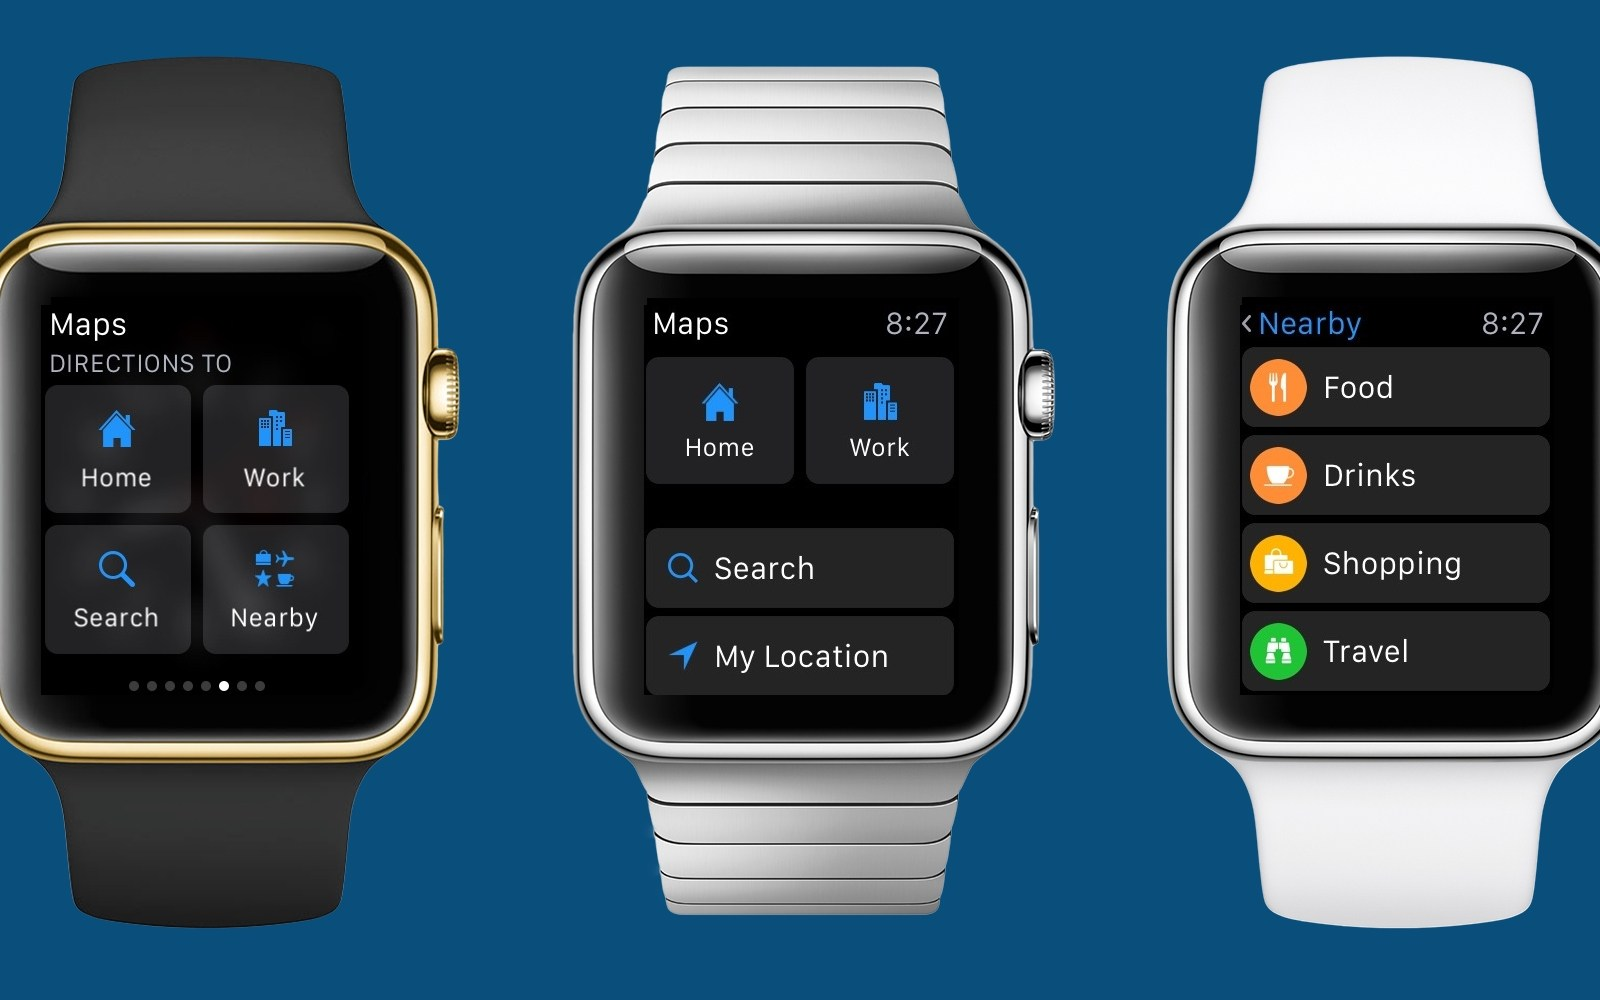 watchOS 2.2 is now available, Apple Watch gains enhanced Maps app + multi-watch pairing support